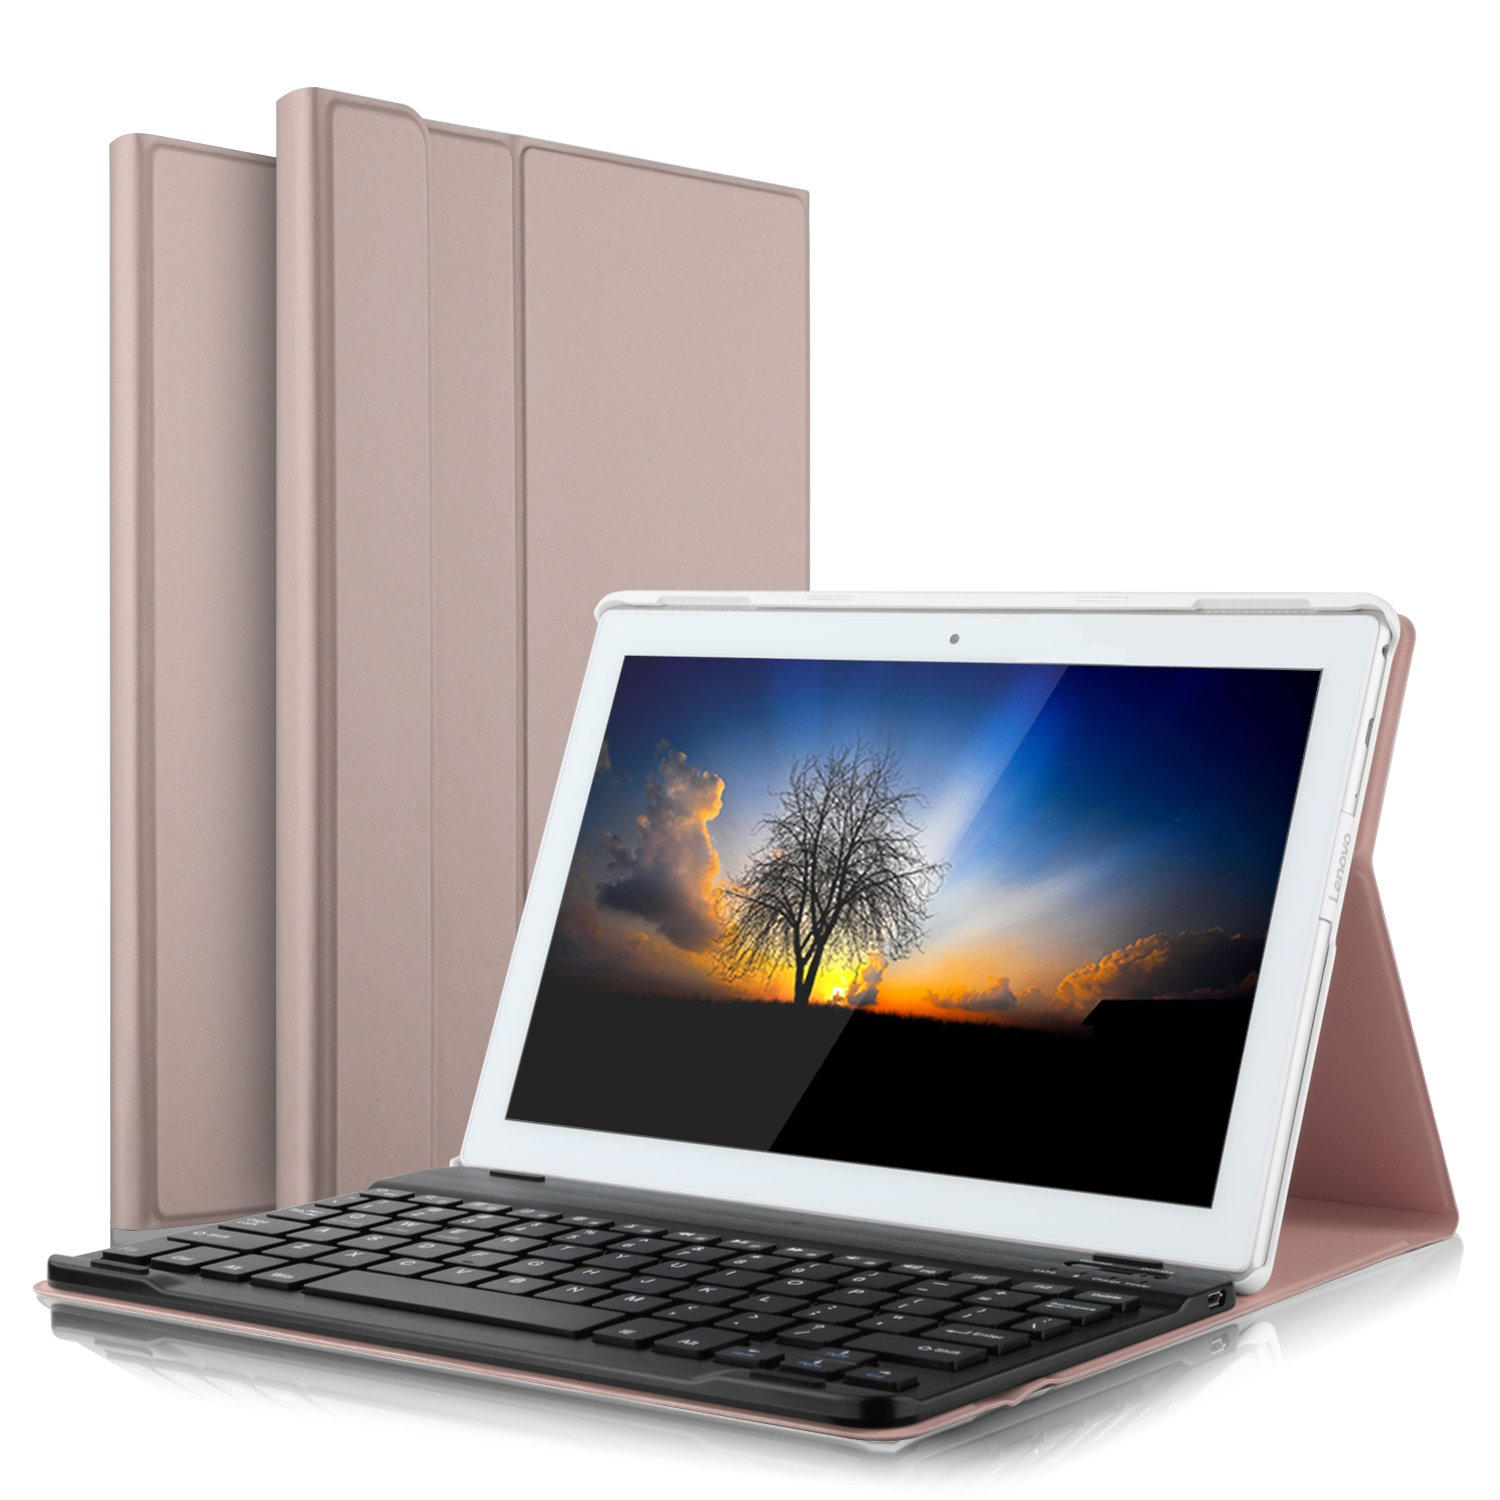 IVSO Lenovo TAB 4 10 Keyboard Case Ultra-Thin Detachable Wireless Keyboard Stand Case/Cover for Lenovo TAB 4 10 Tablet(Rose Gold)